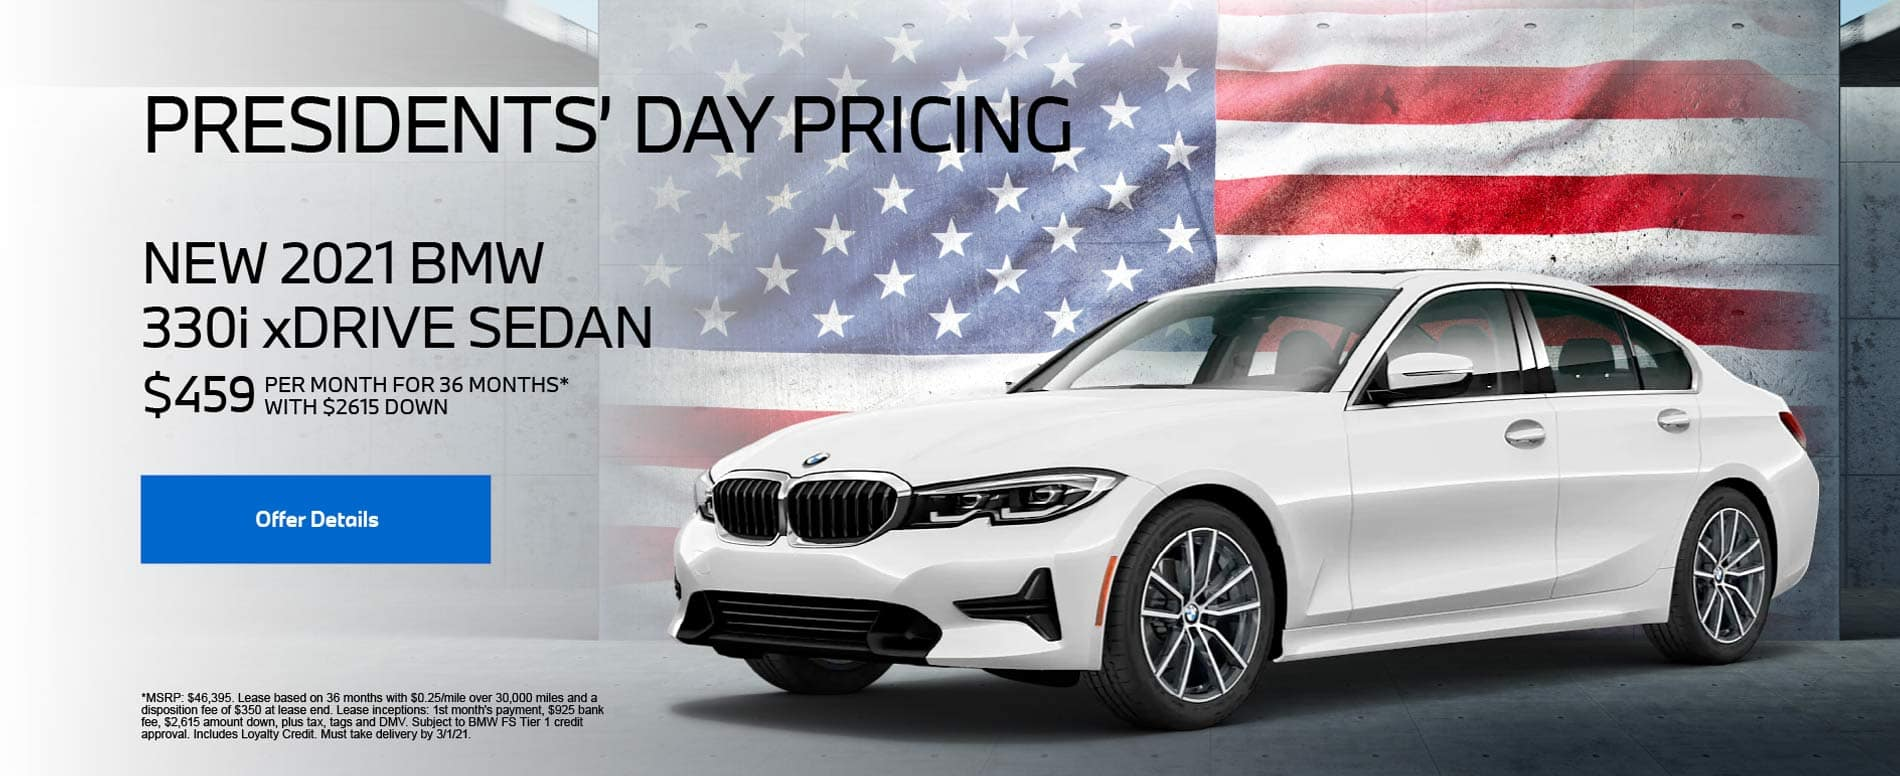 New 2021 BMW 330i xDrive Sedan $459 PER MONTH FOR 36 MONTHS* WITH $2,615 DOWN